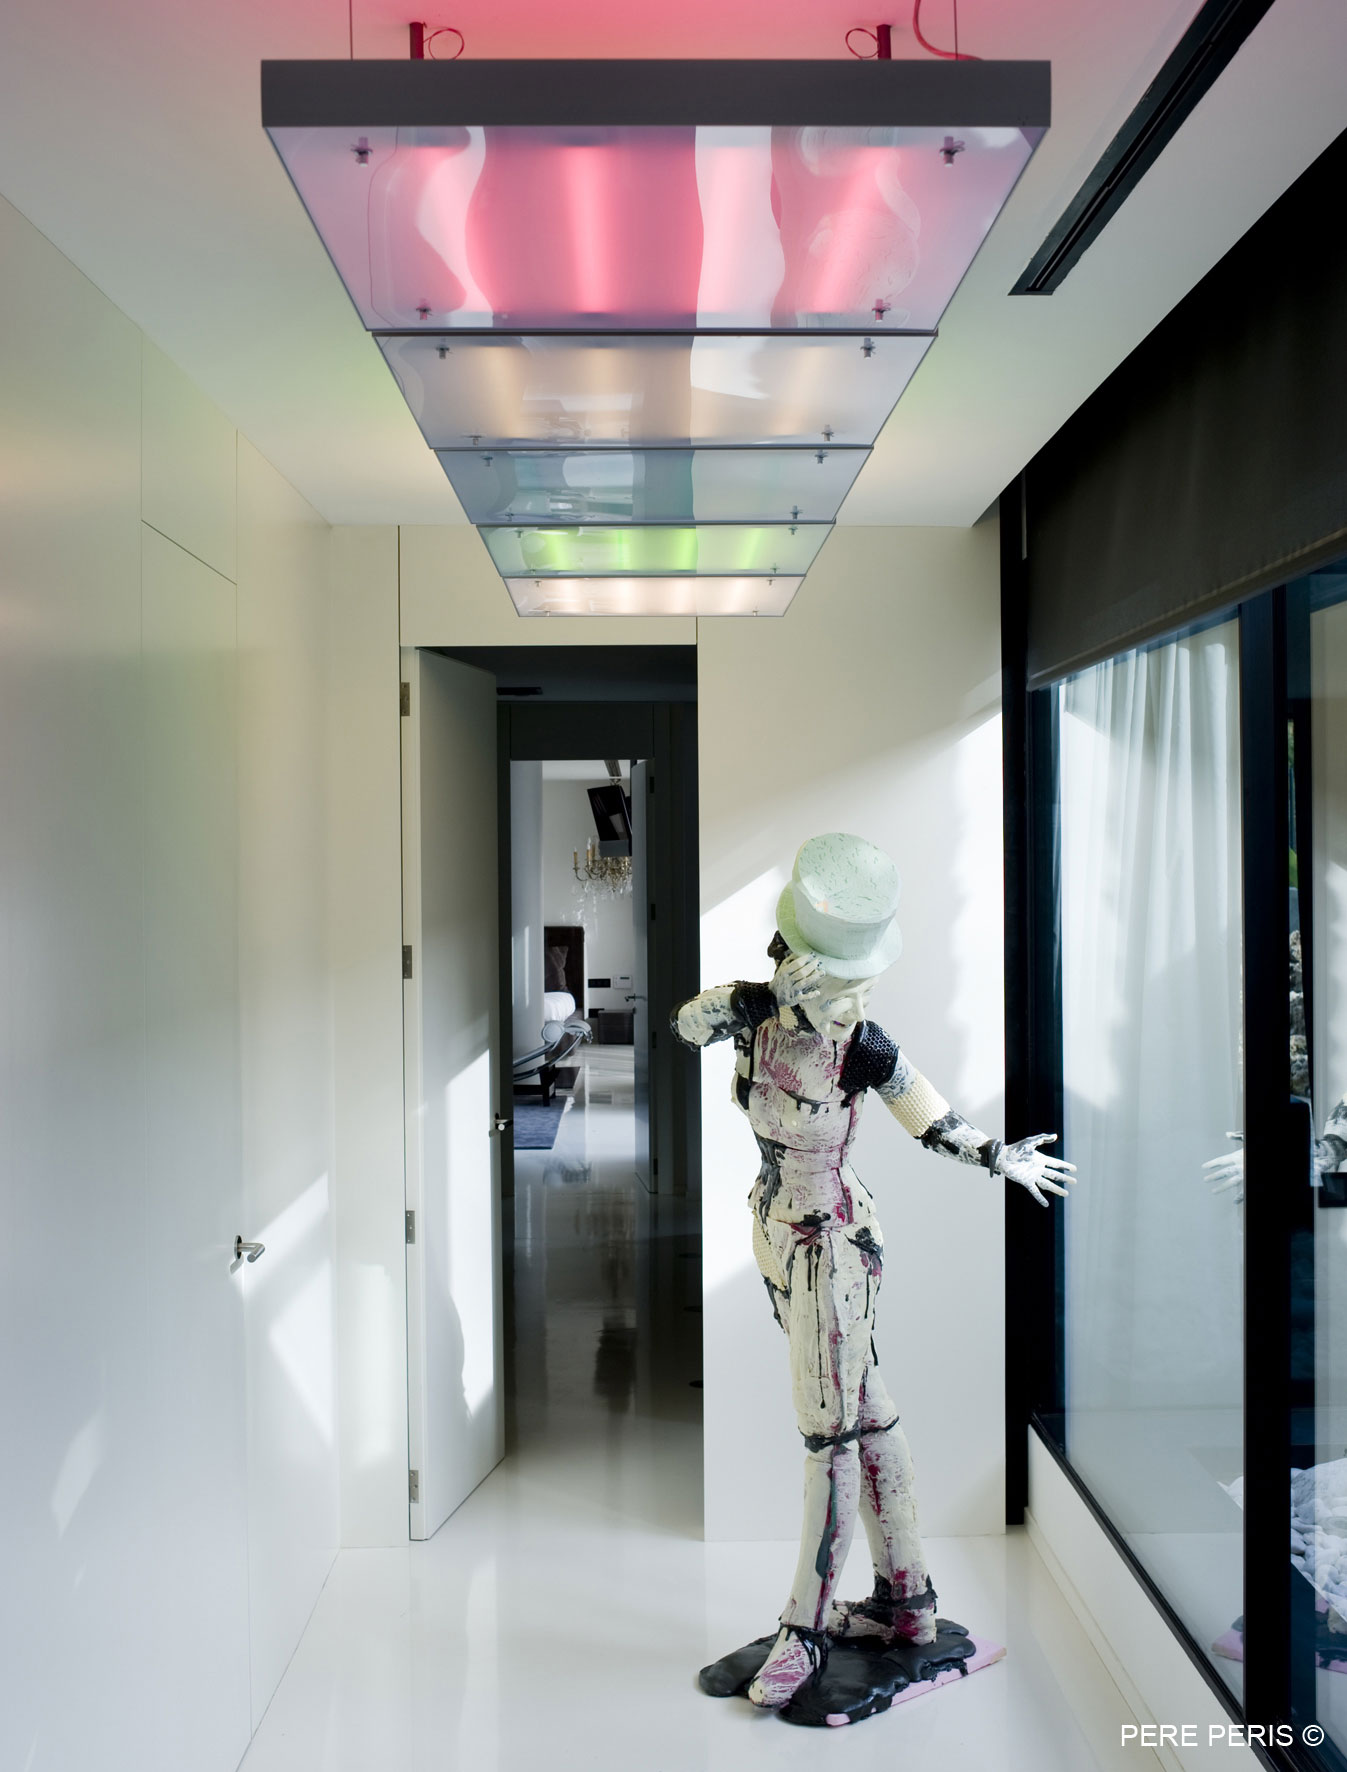 Colored Lighting, Sculpture, Stylish Glass Home in Valencia, Spain